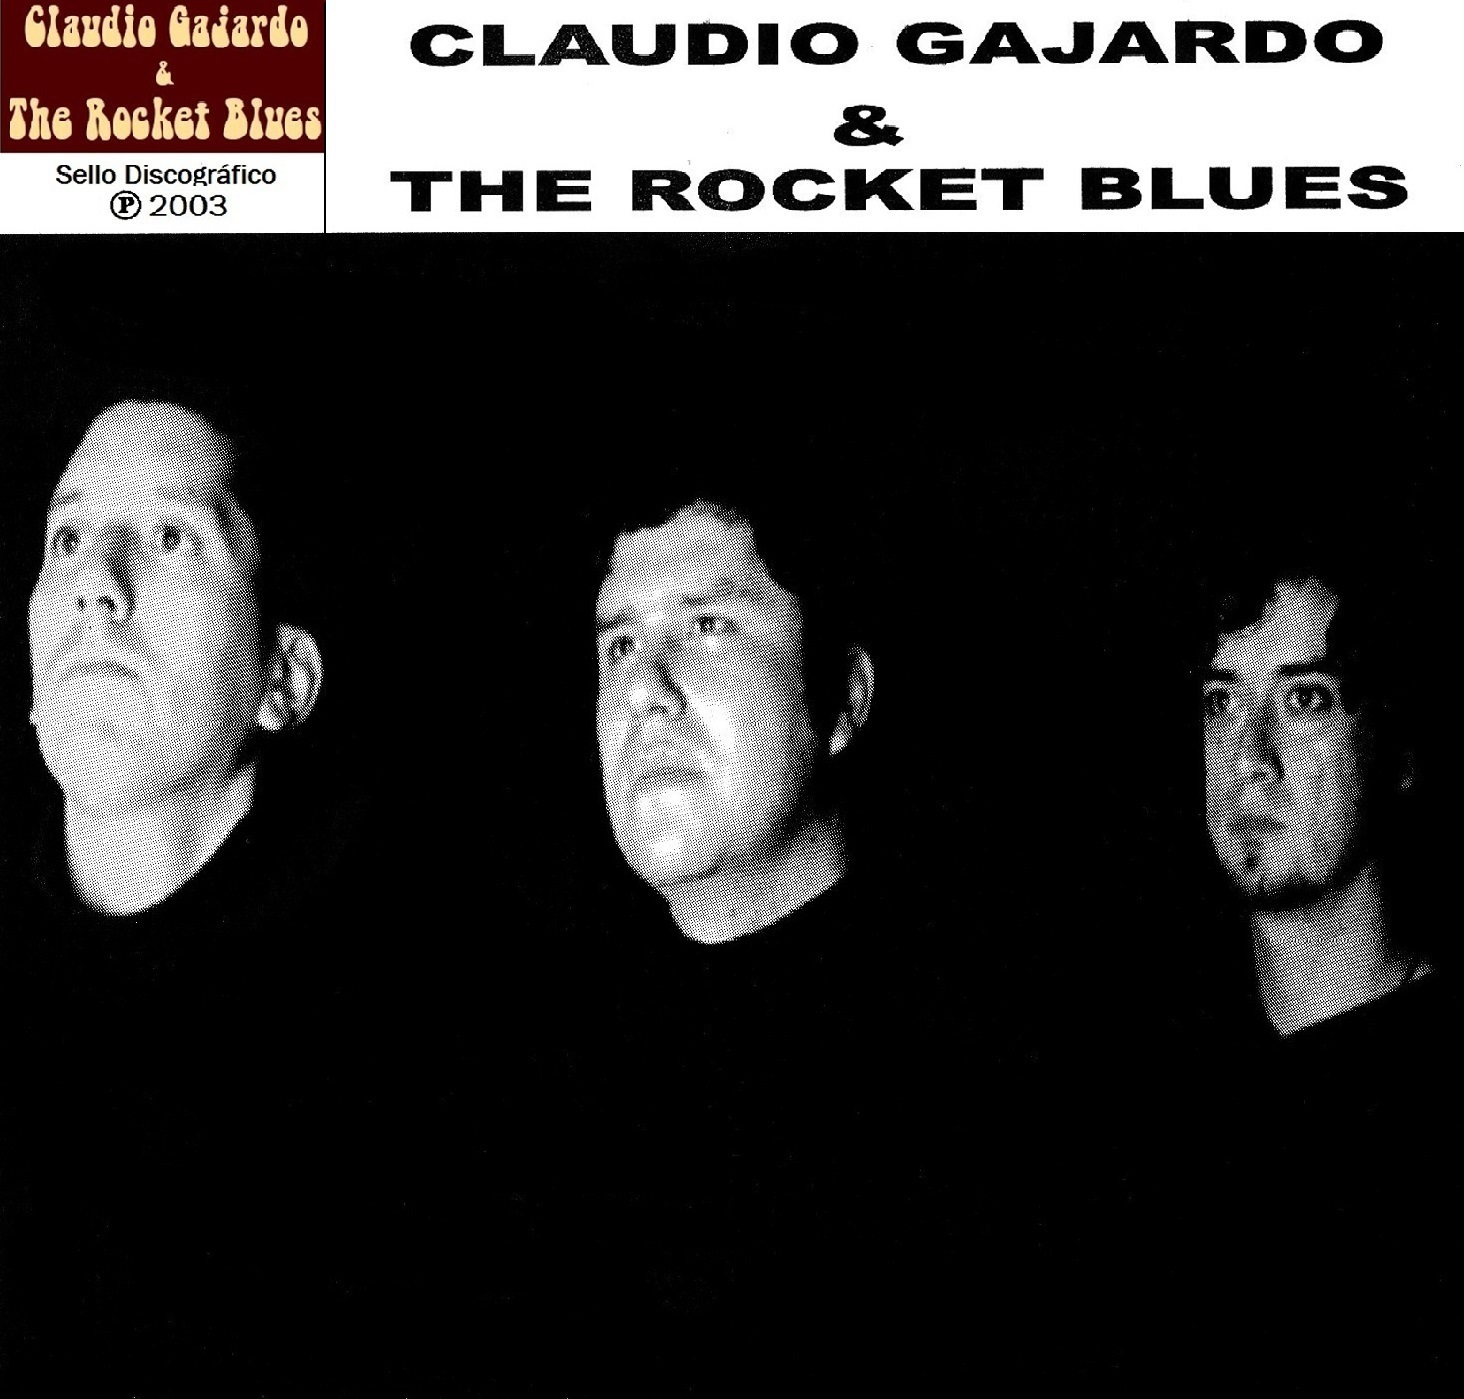 Carátula_de_Claudio_Gajardo_&_The_Rocket_Blues_(2003)1